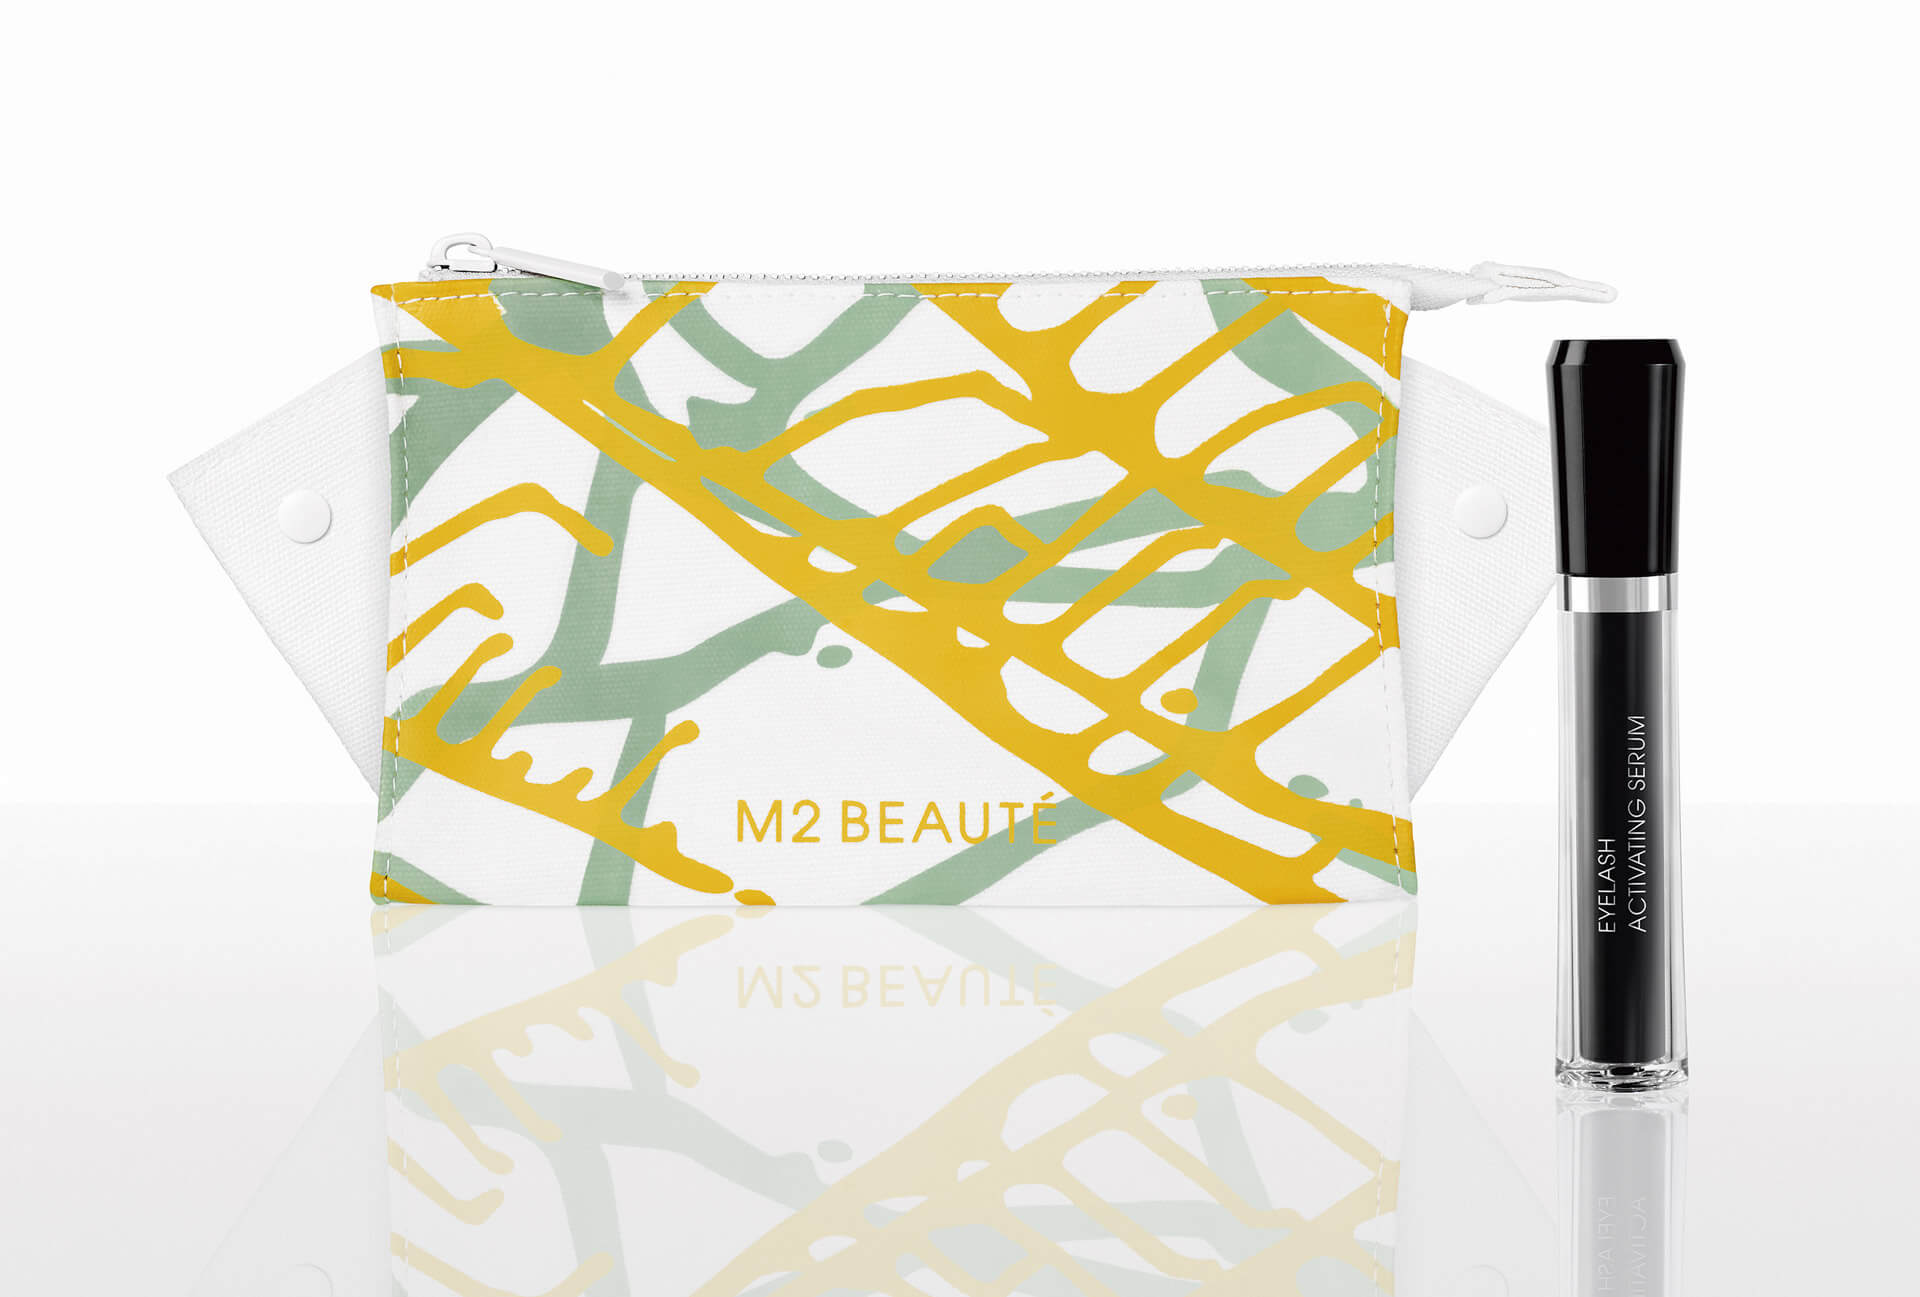 m2-beaute-klodin-erb-art-edition